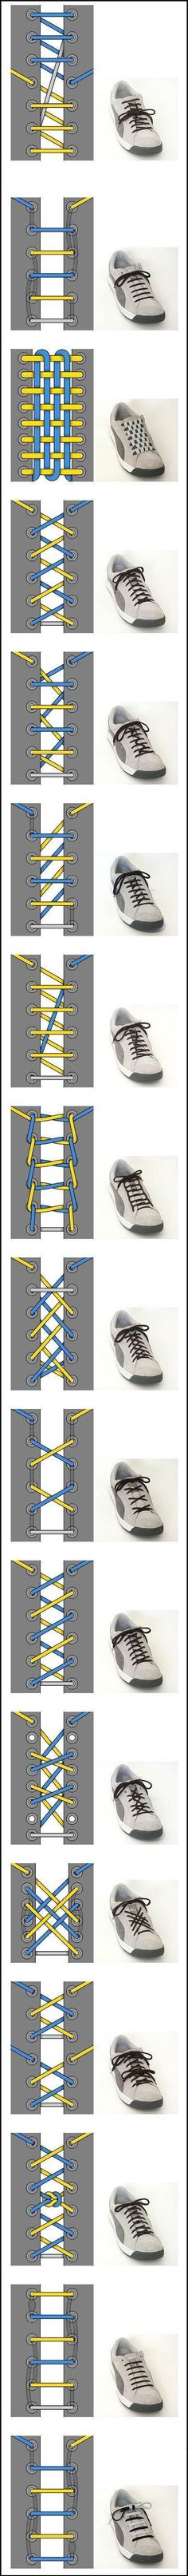 Shoe Lace Configurations